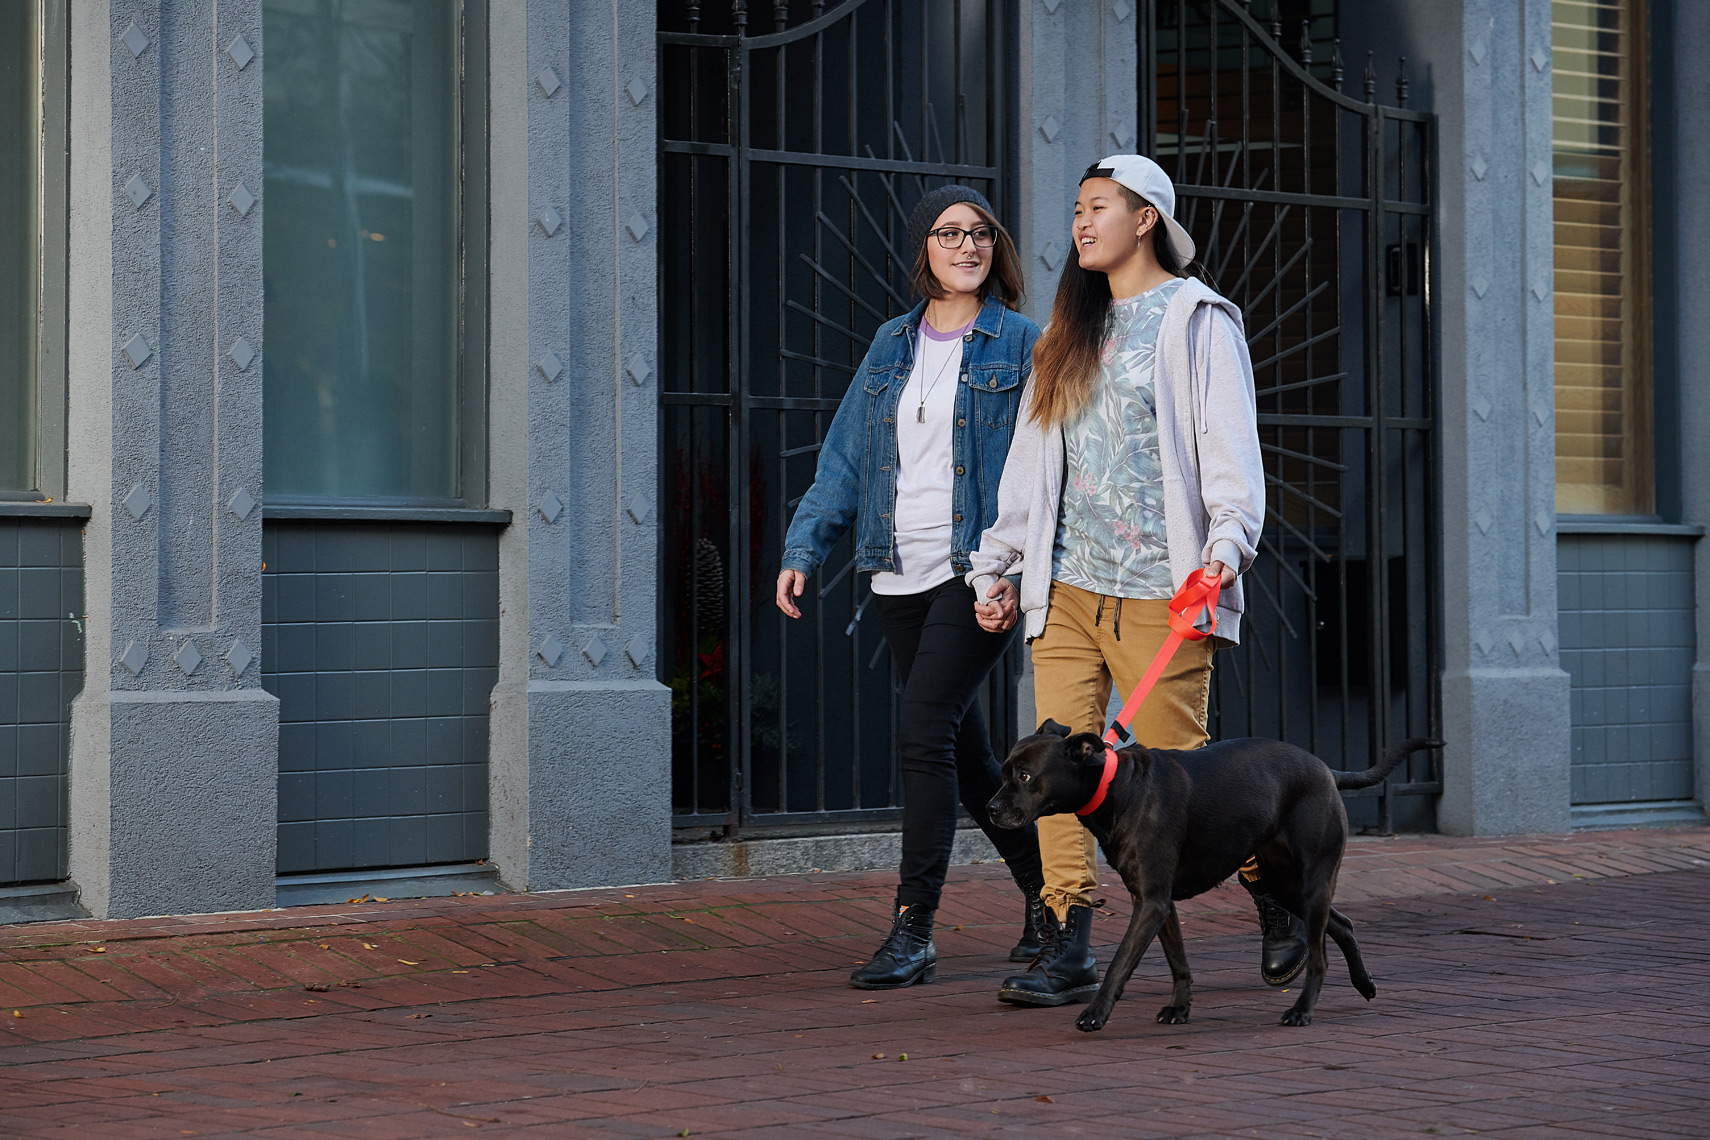 2017-Vancouver-Lifestyle-Photographer-ErichSaide-Advertising-RCPets-DogWalking-City